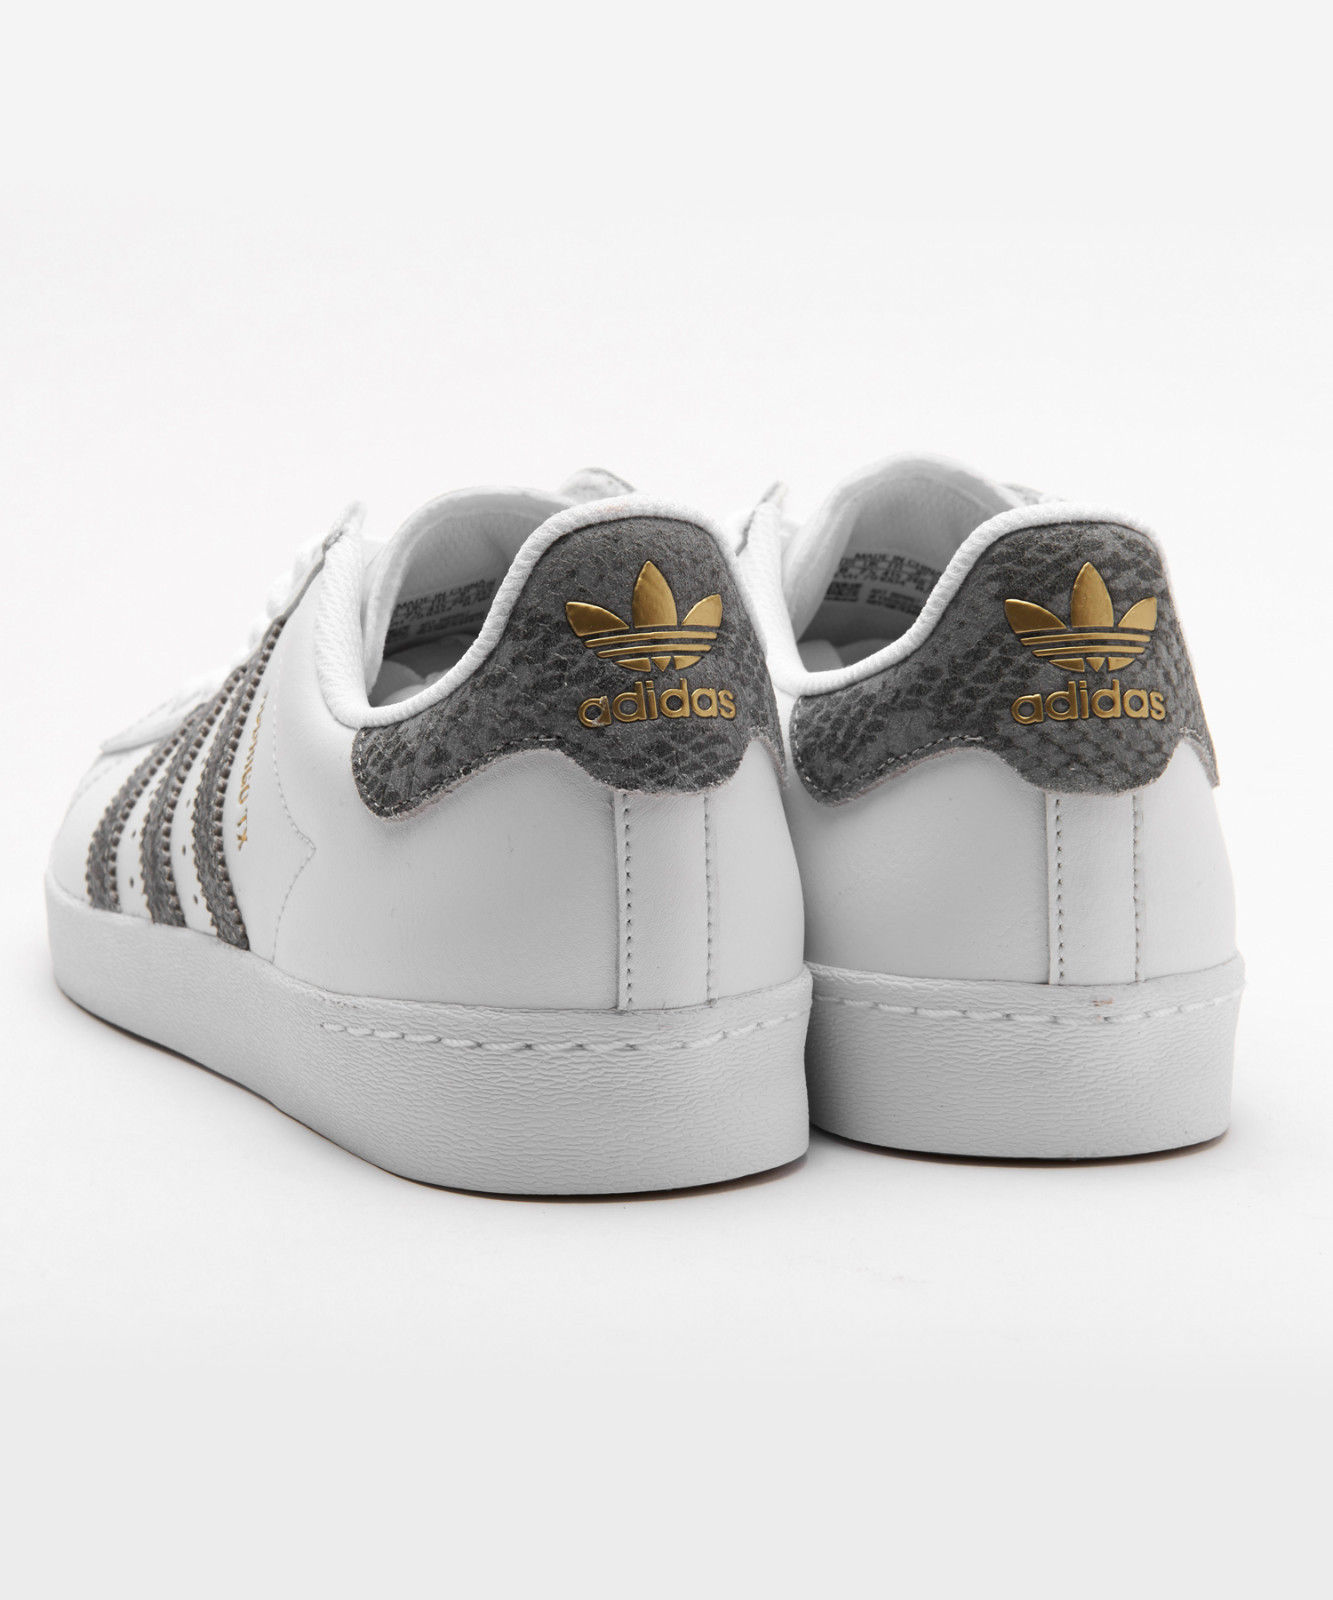 Cheap Superstar ADV Shoes for Sale, Buy Superstar Vulc ADV Online